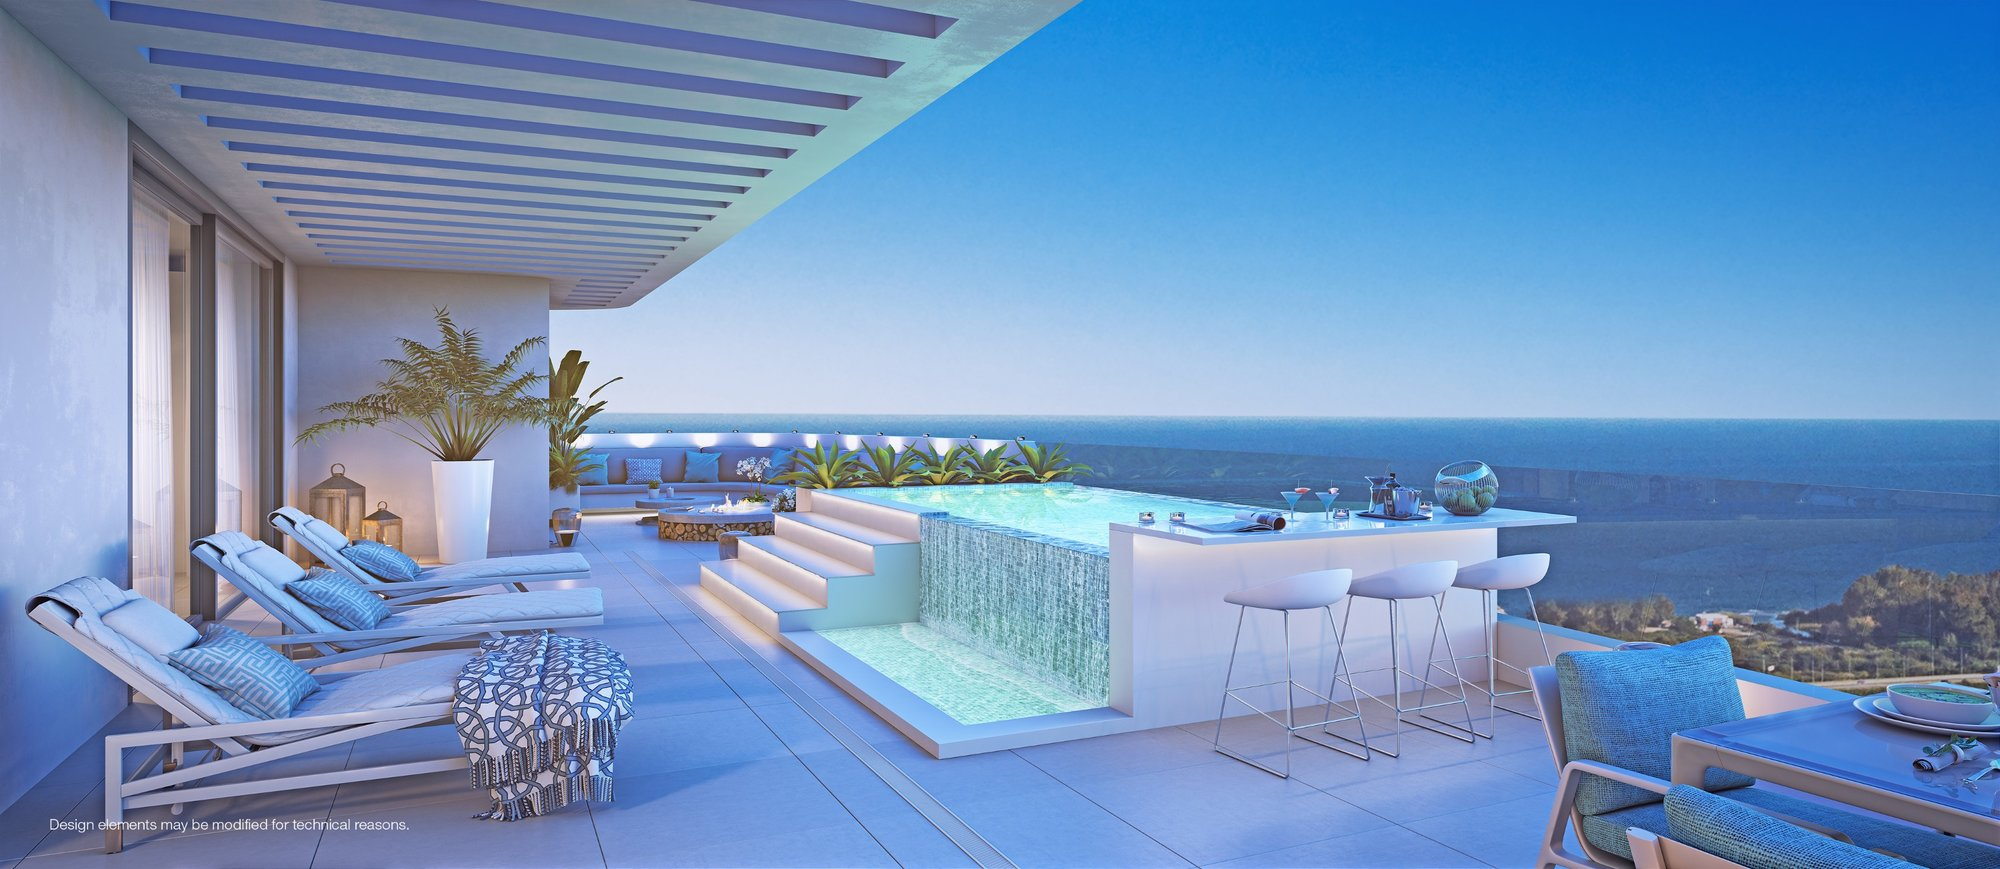 Penthouse for sale in Fuengirola, Higueron